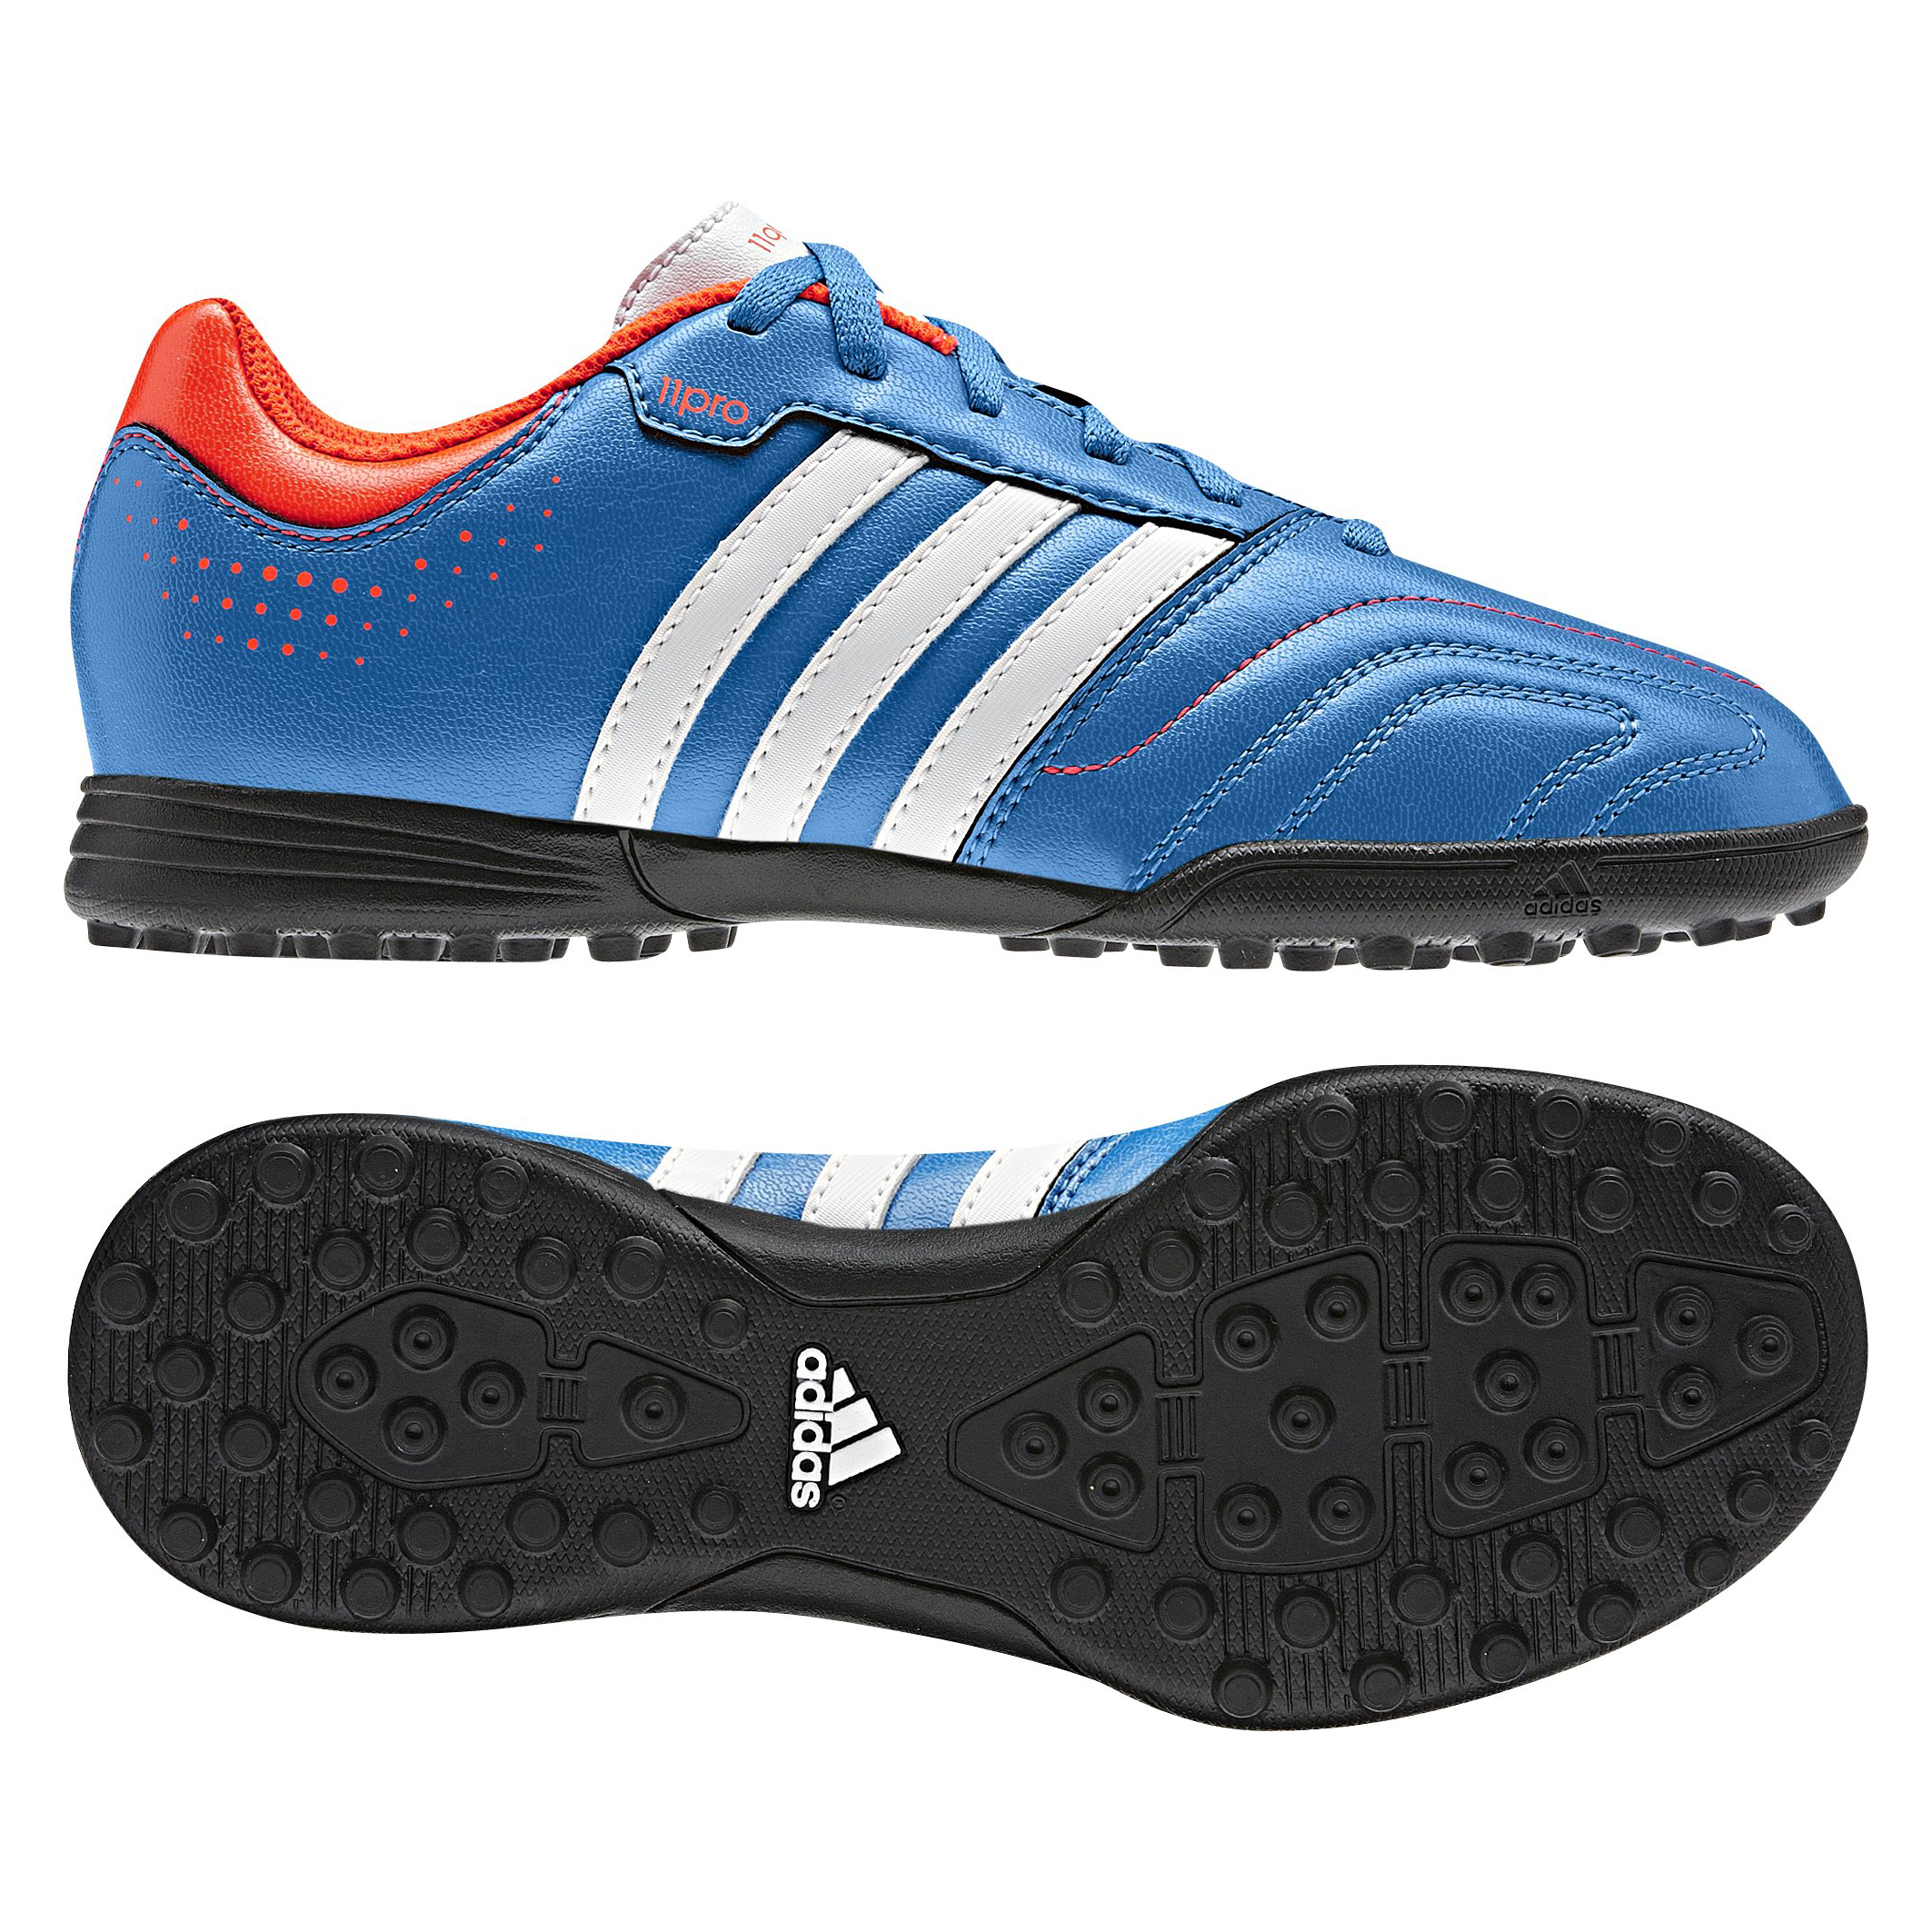 Adidas 11Questra TRX Astro Turf Trainers - Bright Blue/Running White/Infrared - Kids